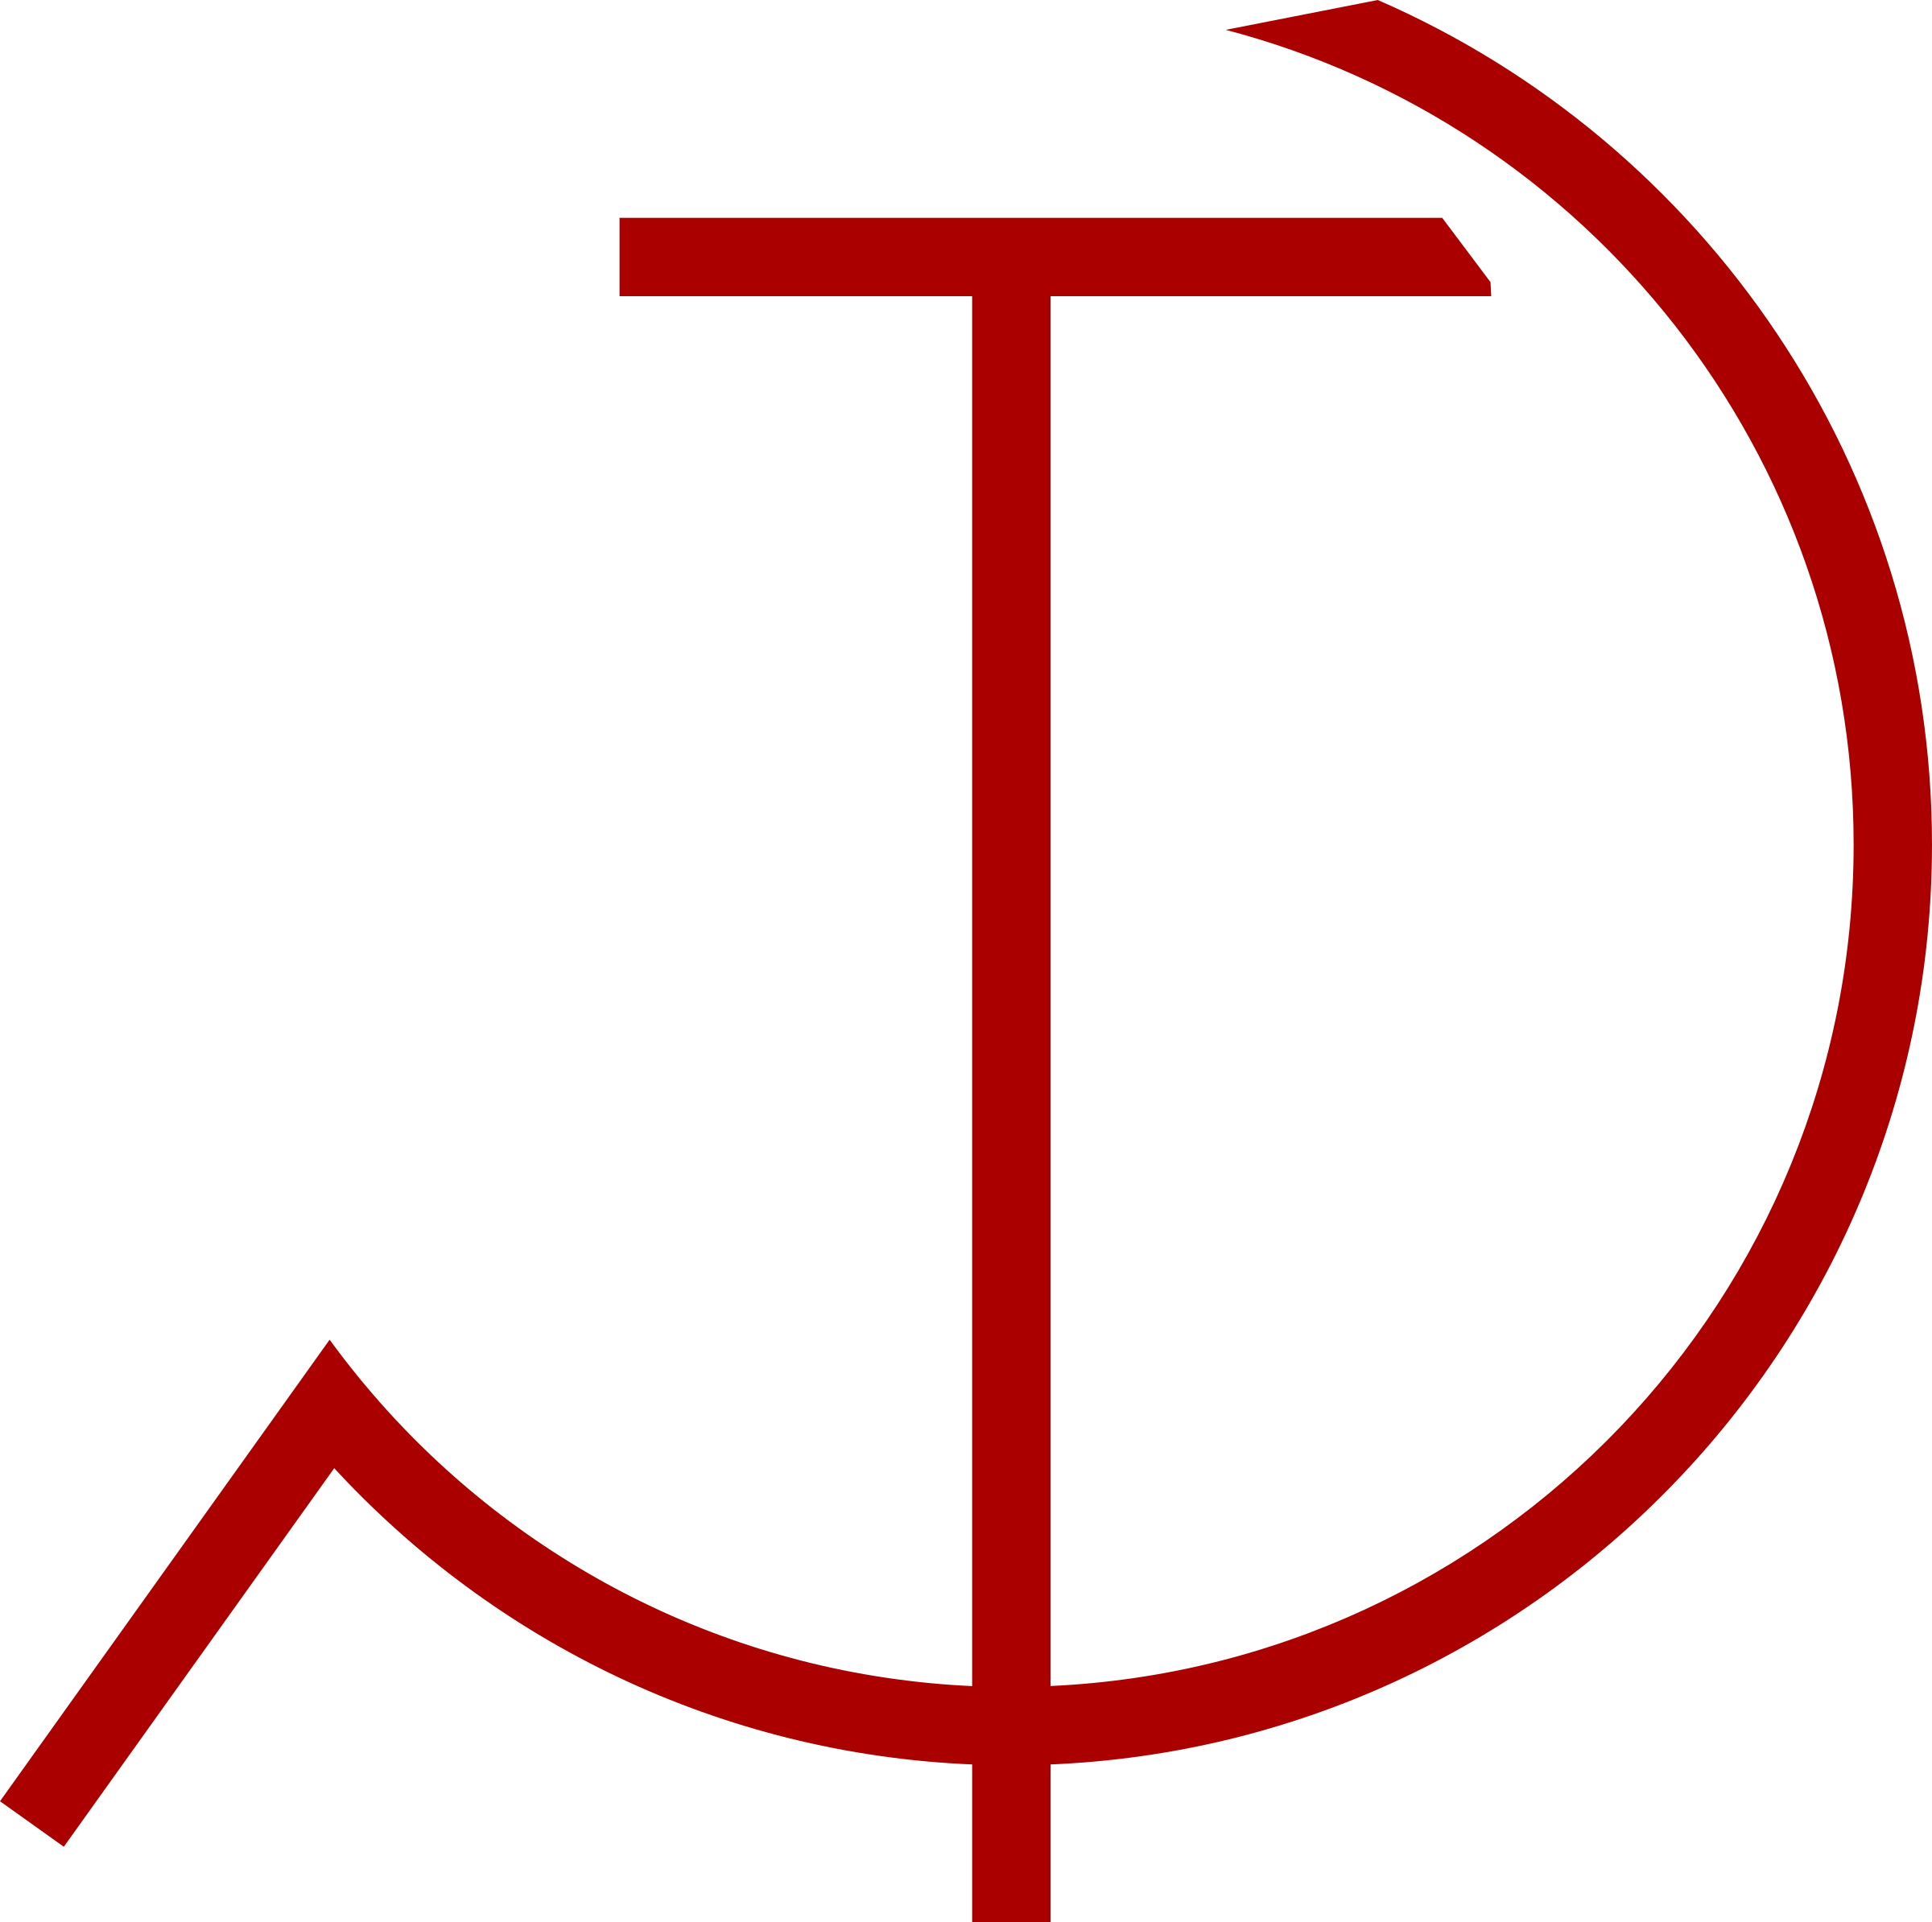 Clipart hammer red hammer. And sickle